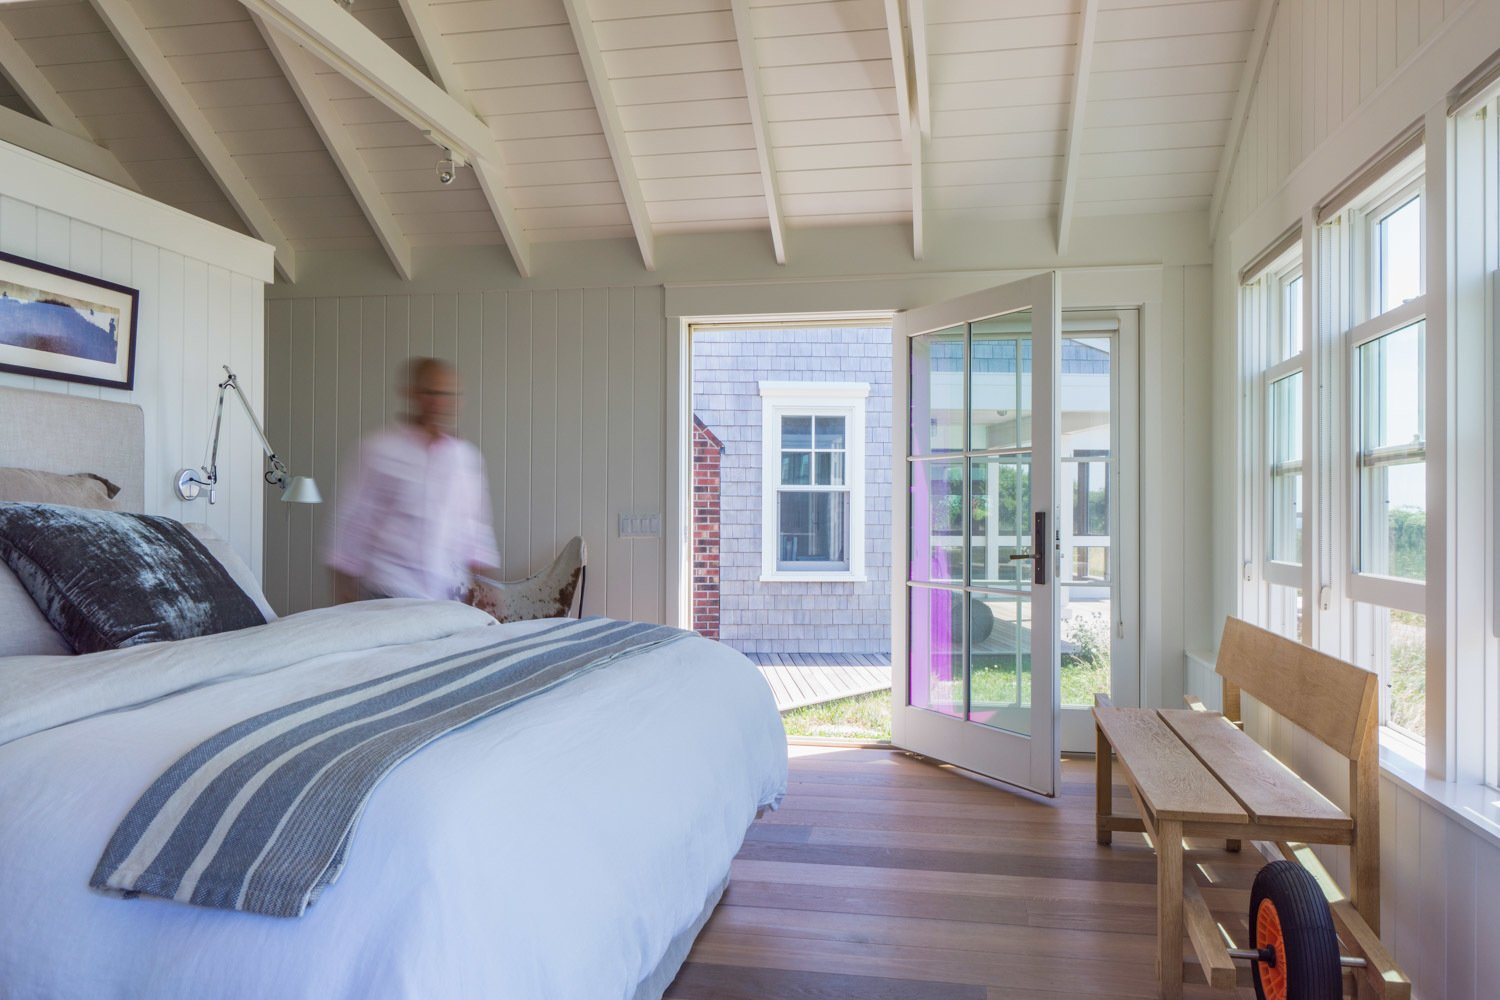 A modest bedroom sits functionally askew to the main part of the cottage to provide a panoramic view of Provincetown harbor - a spectacular view of twinkling nighttime shore lighting as the dunes curve toward the tip of Cape Cod. The open french door leads to a secluded hot tub and deck area.  Corkin House by KRUEGER ASSOCIATES ARCHITECTS